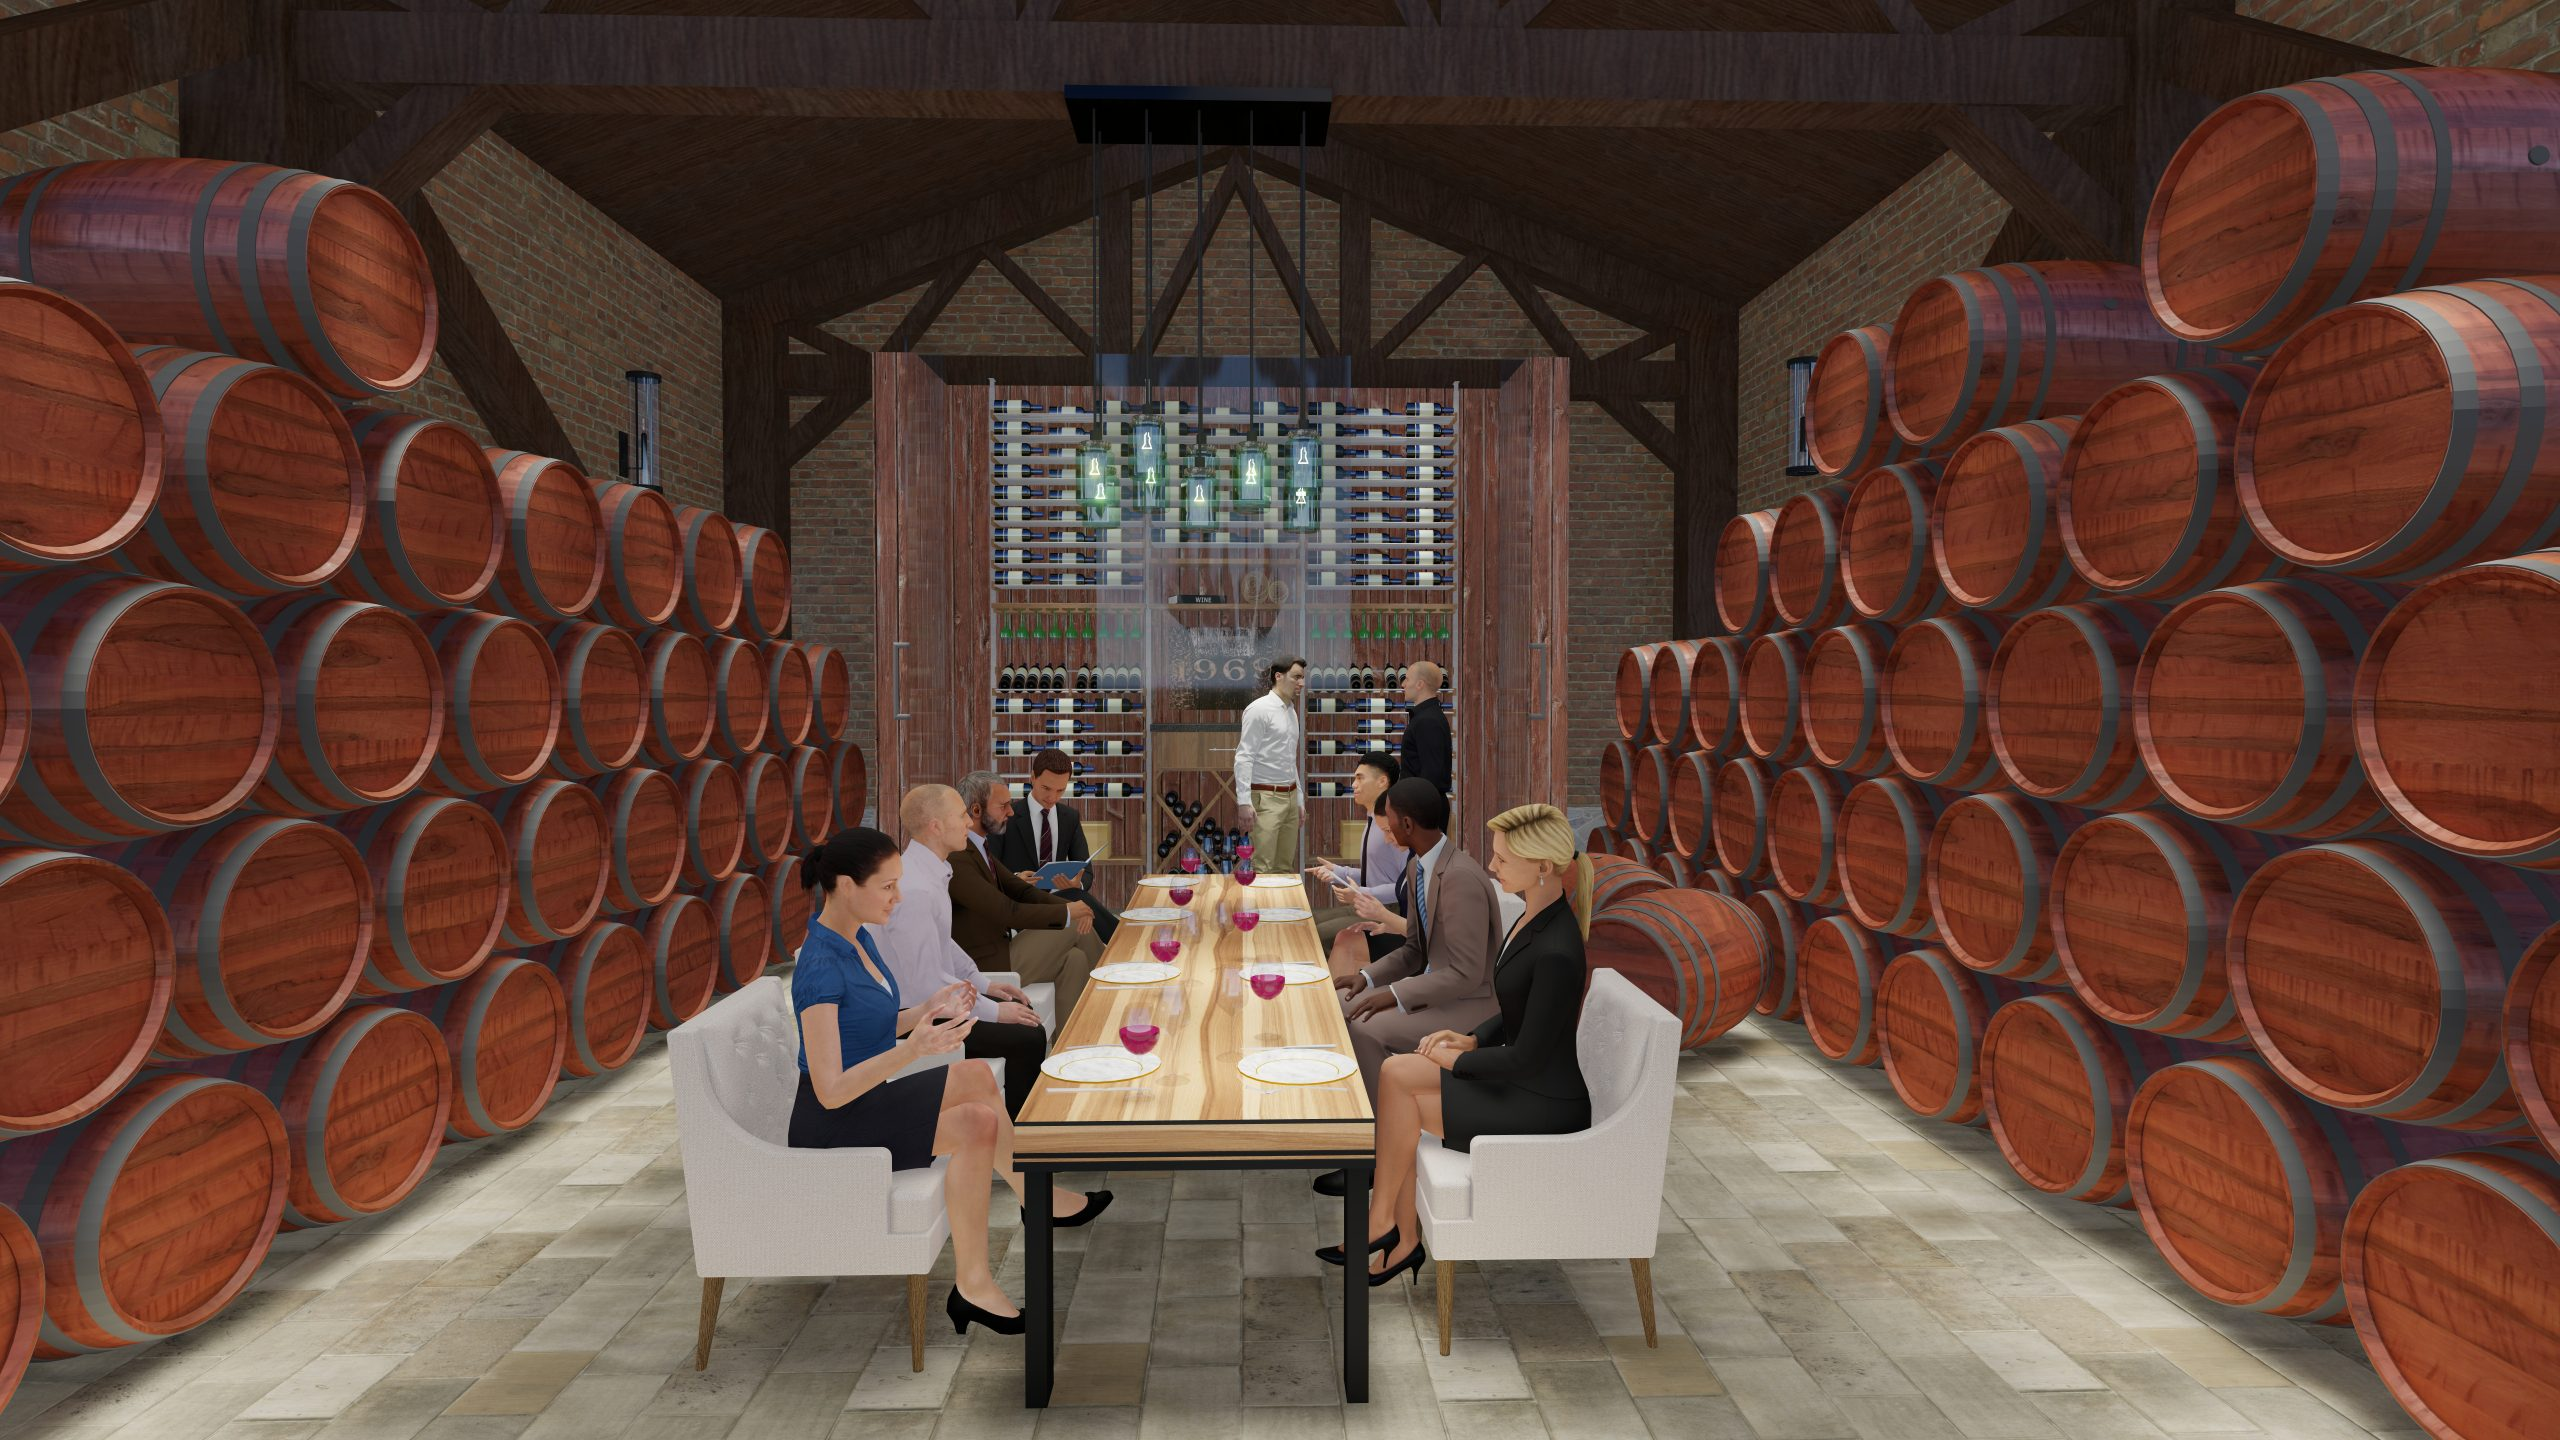 Virtual Event in Wine Cellar